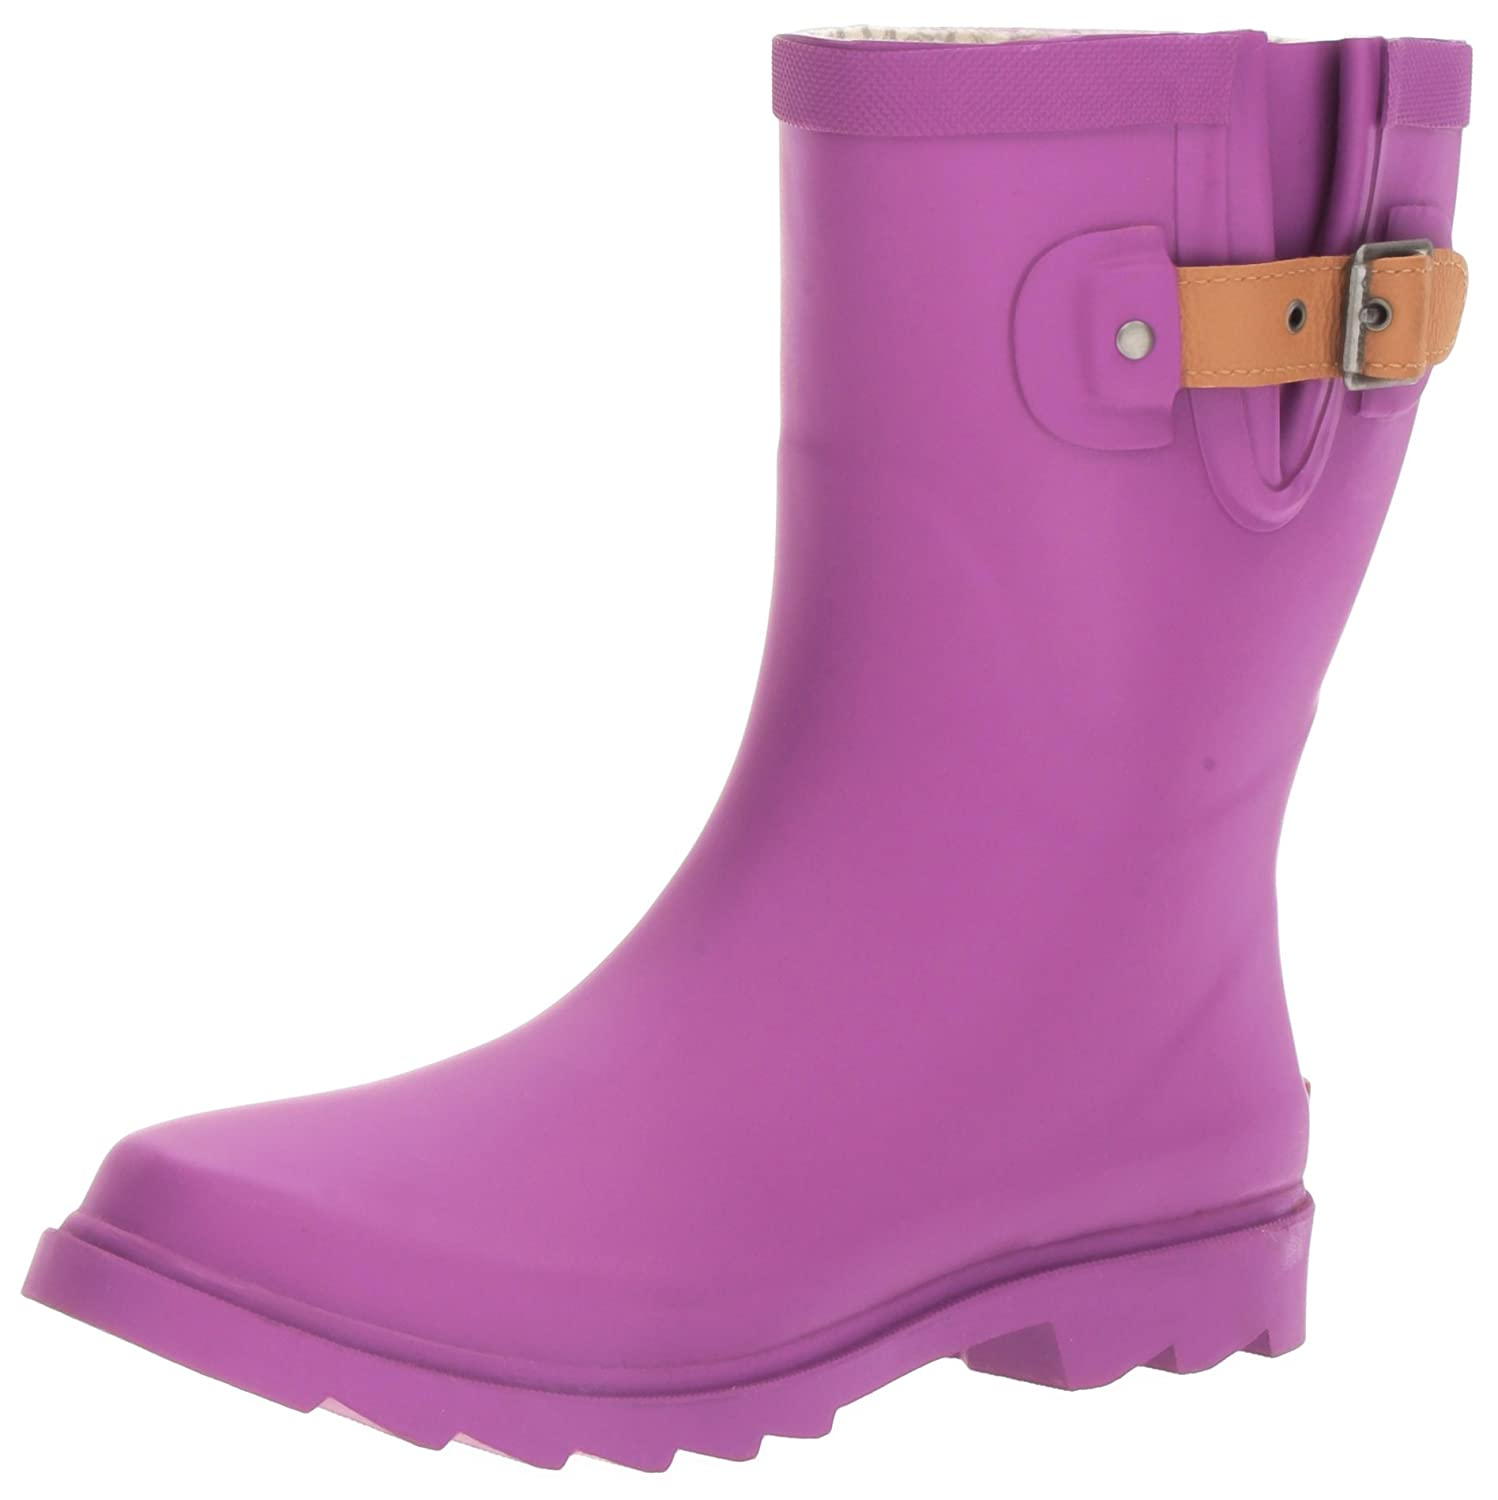 Chooka Women's Mid-Height Rain Boot B01LVZ9Q7H 9 B(M) US|Deep Orchid